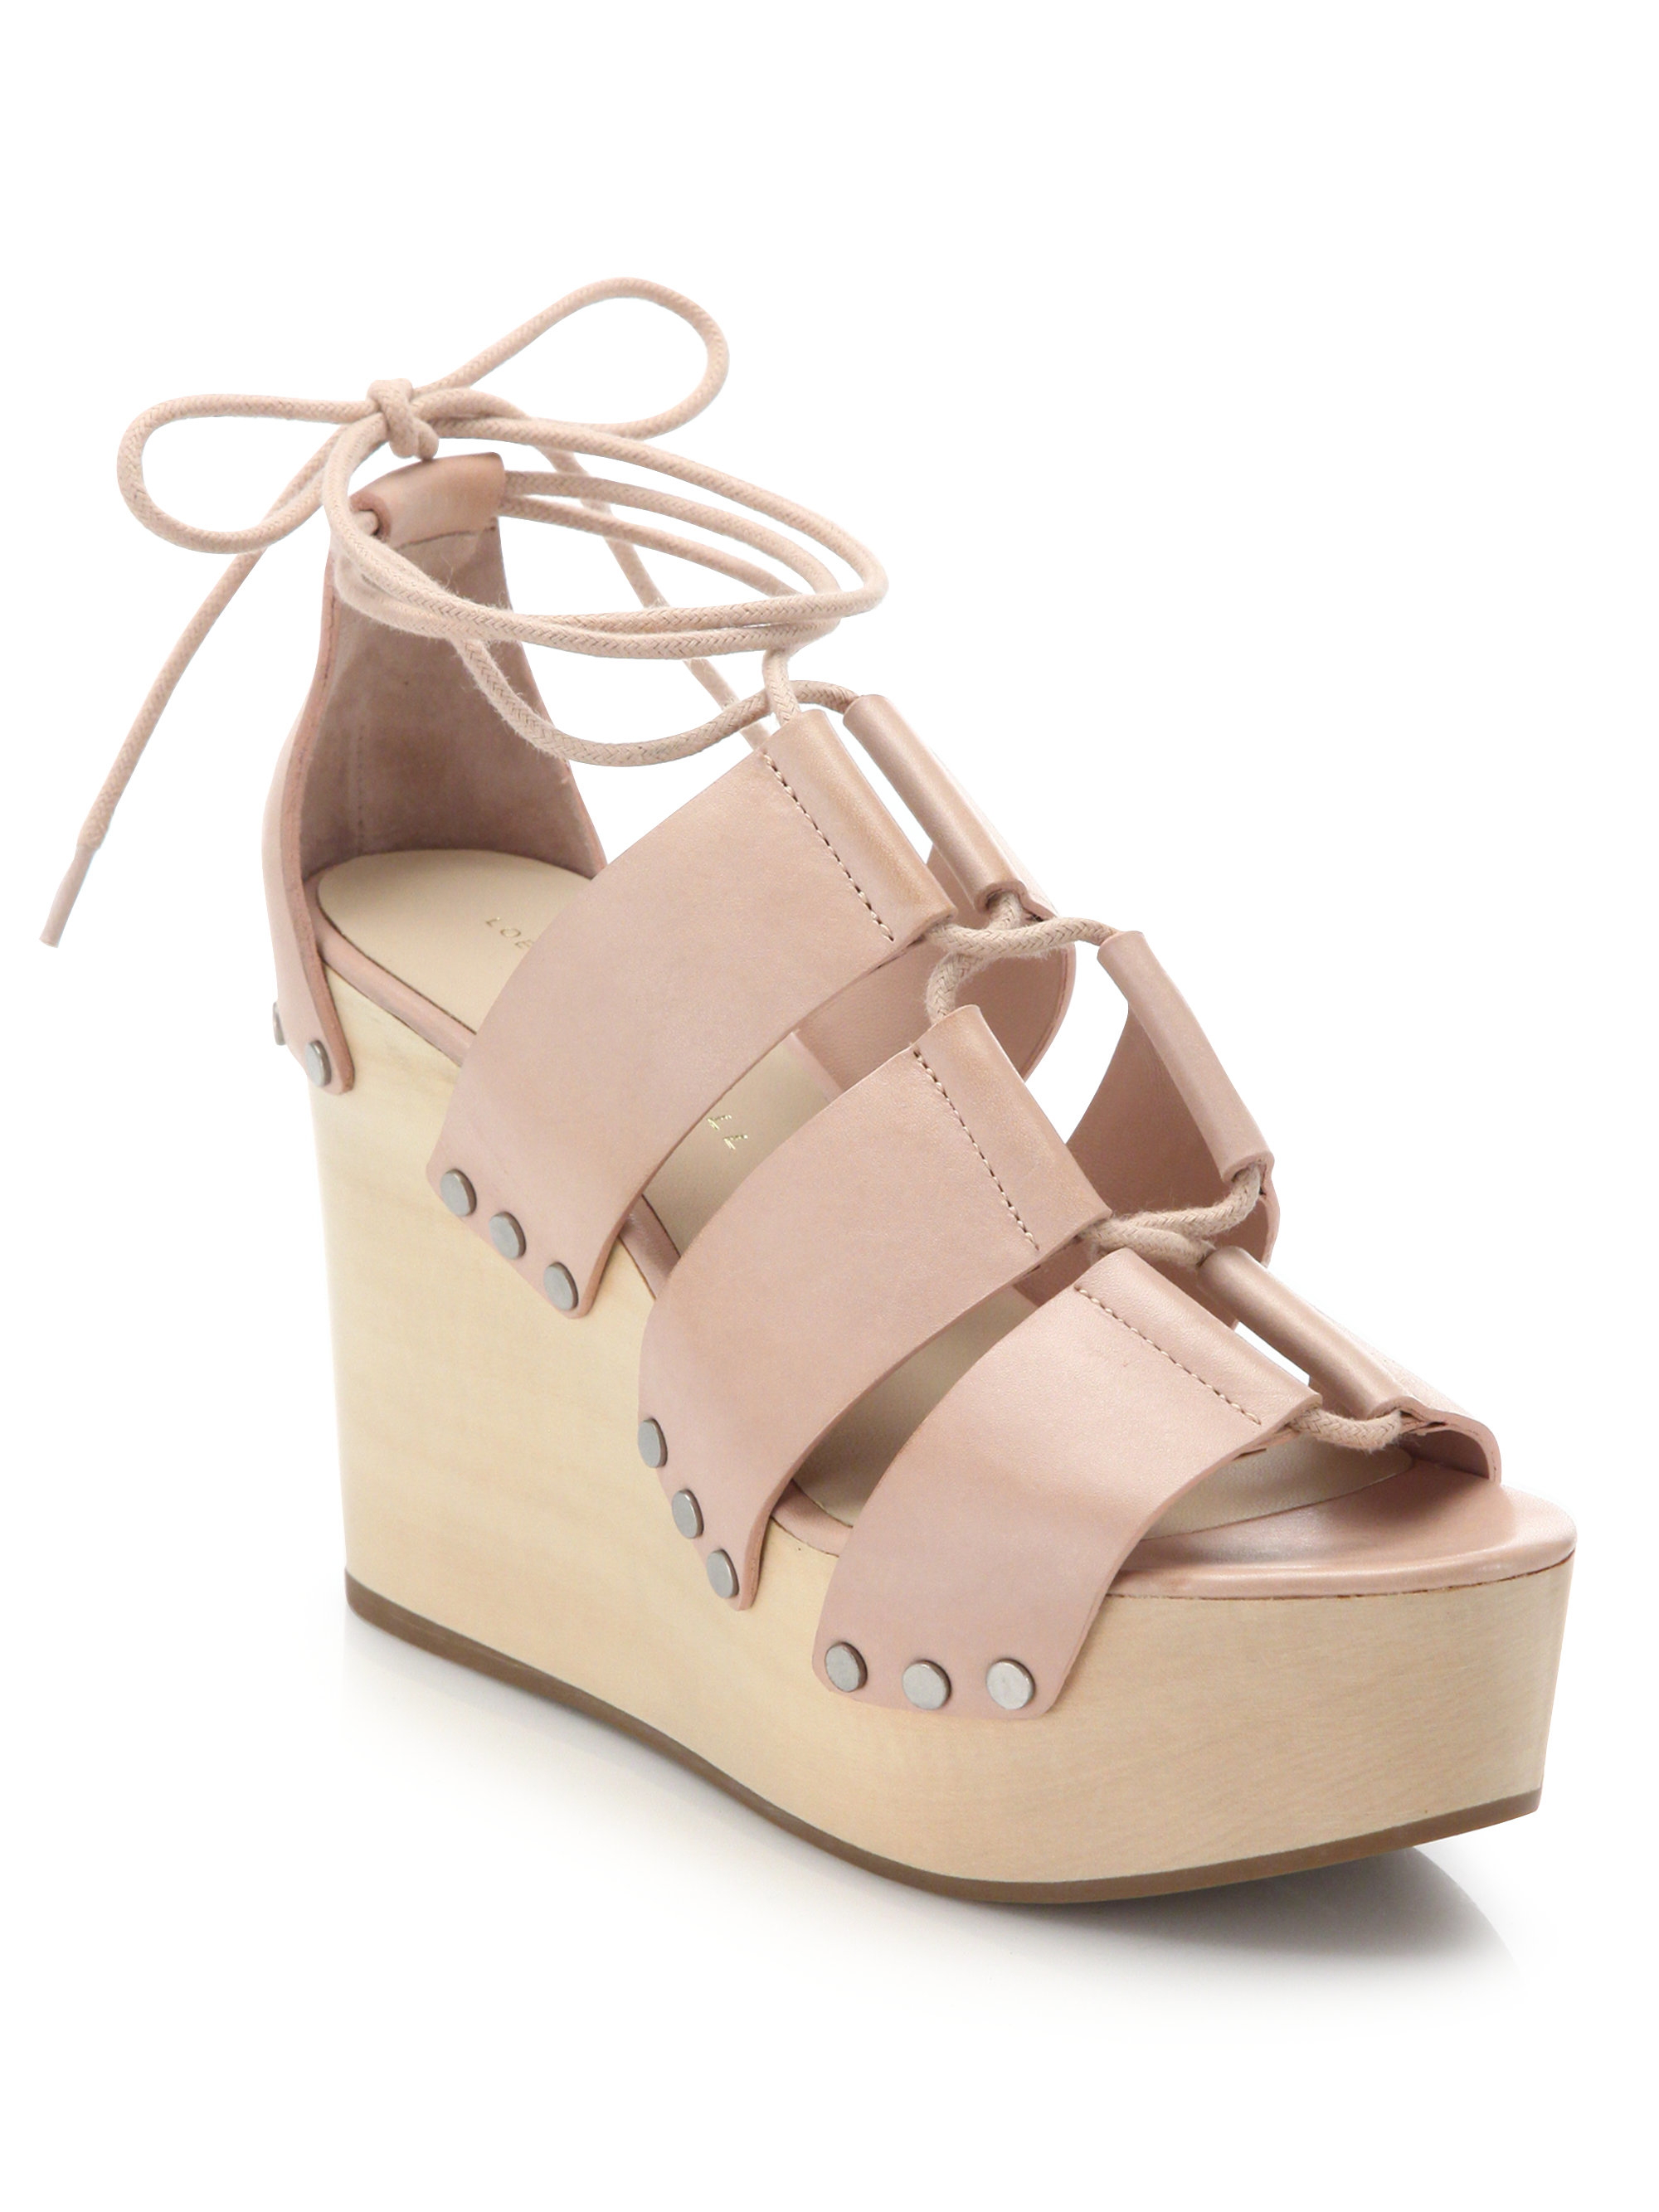 Loeffler Randall Metallic Leather Platform Sandals outlet 2014 new fashion Style for sale release dates cheap price buy cheap extremely HFv8JN